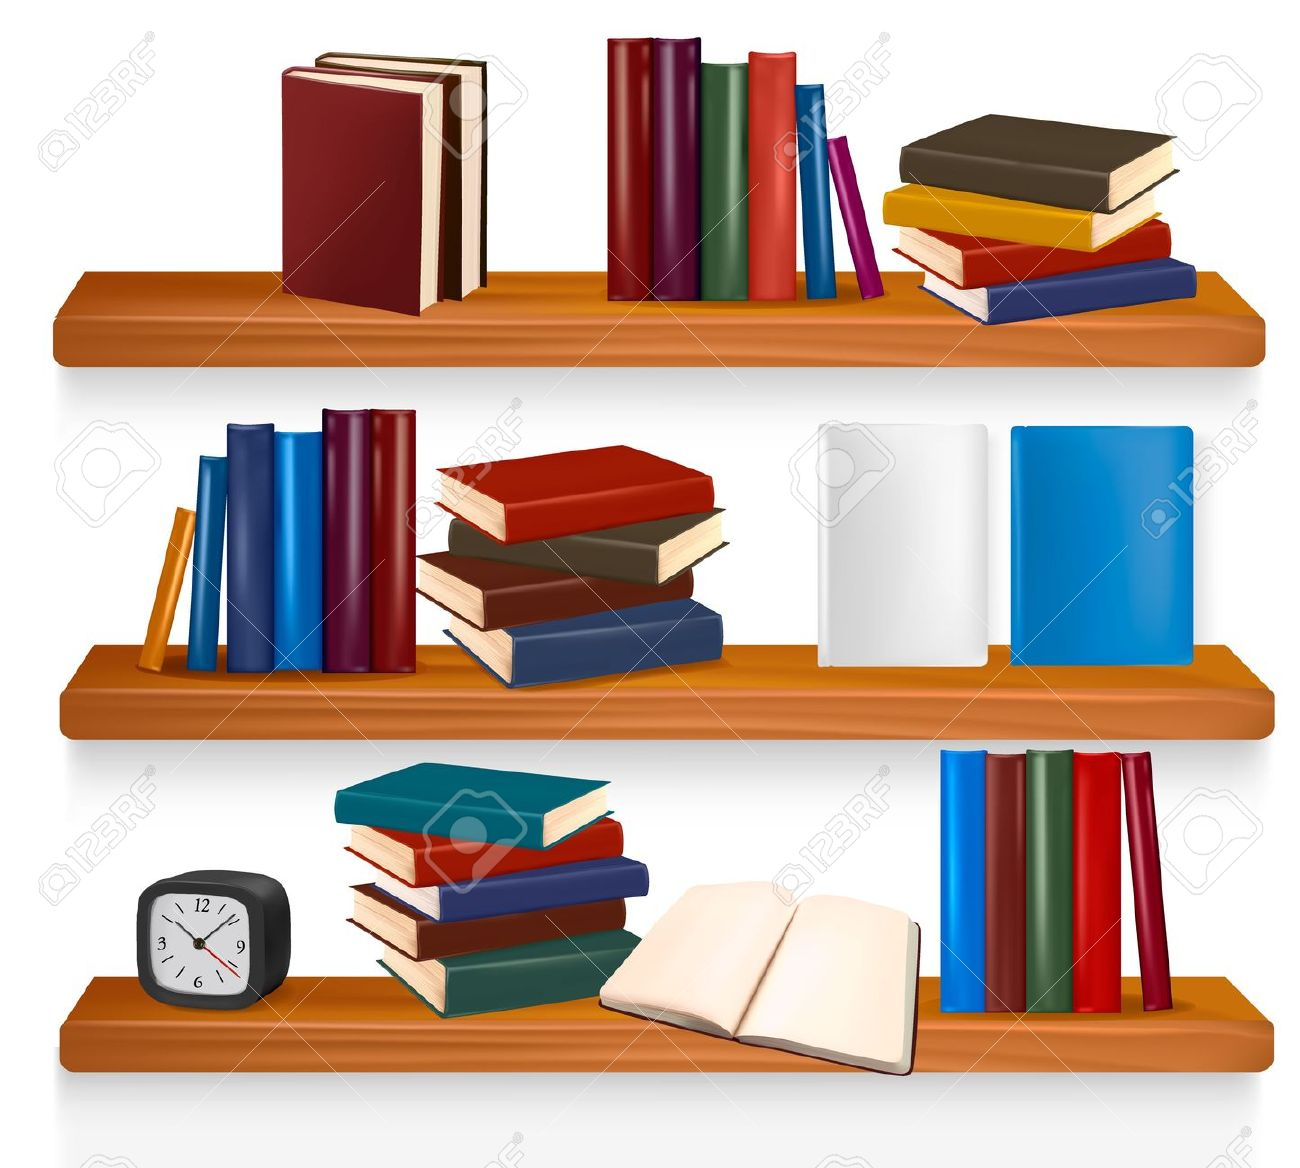 Shelf clipart #1, Download drawings